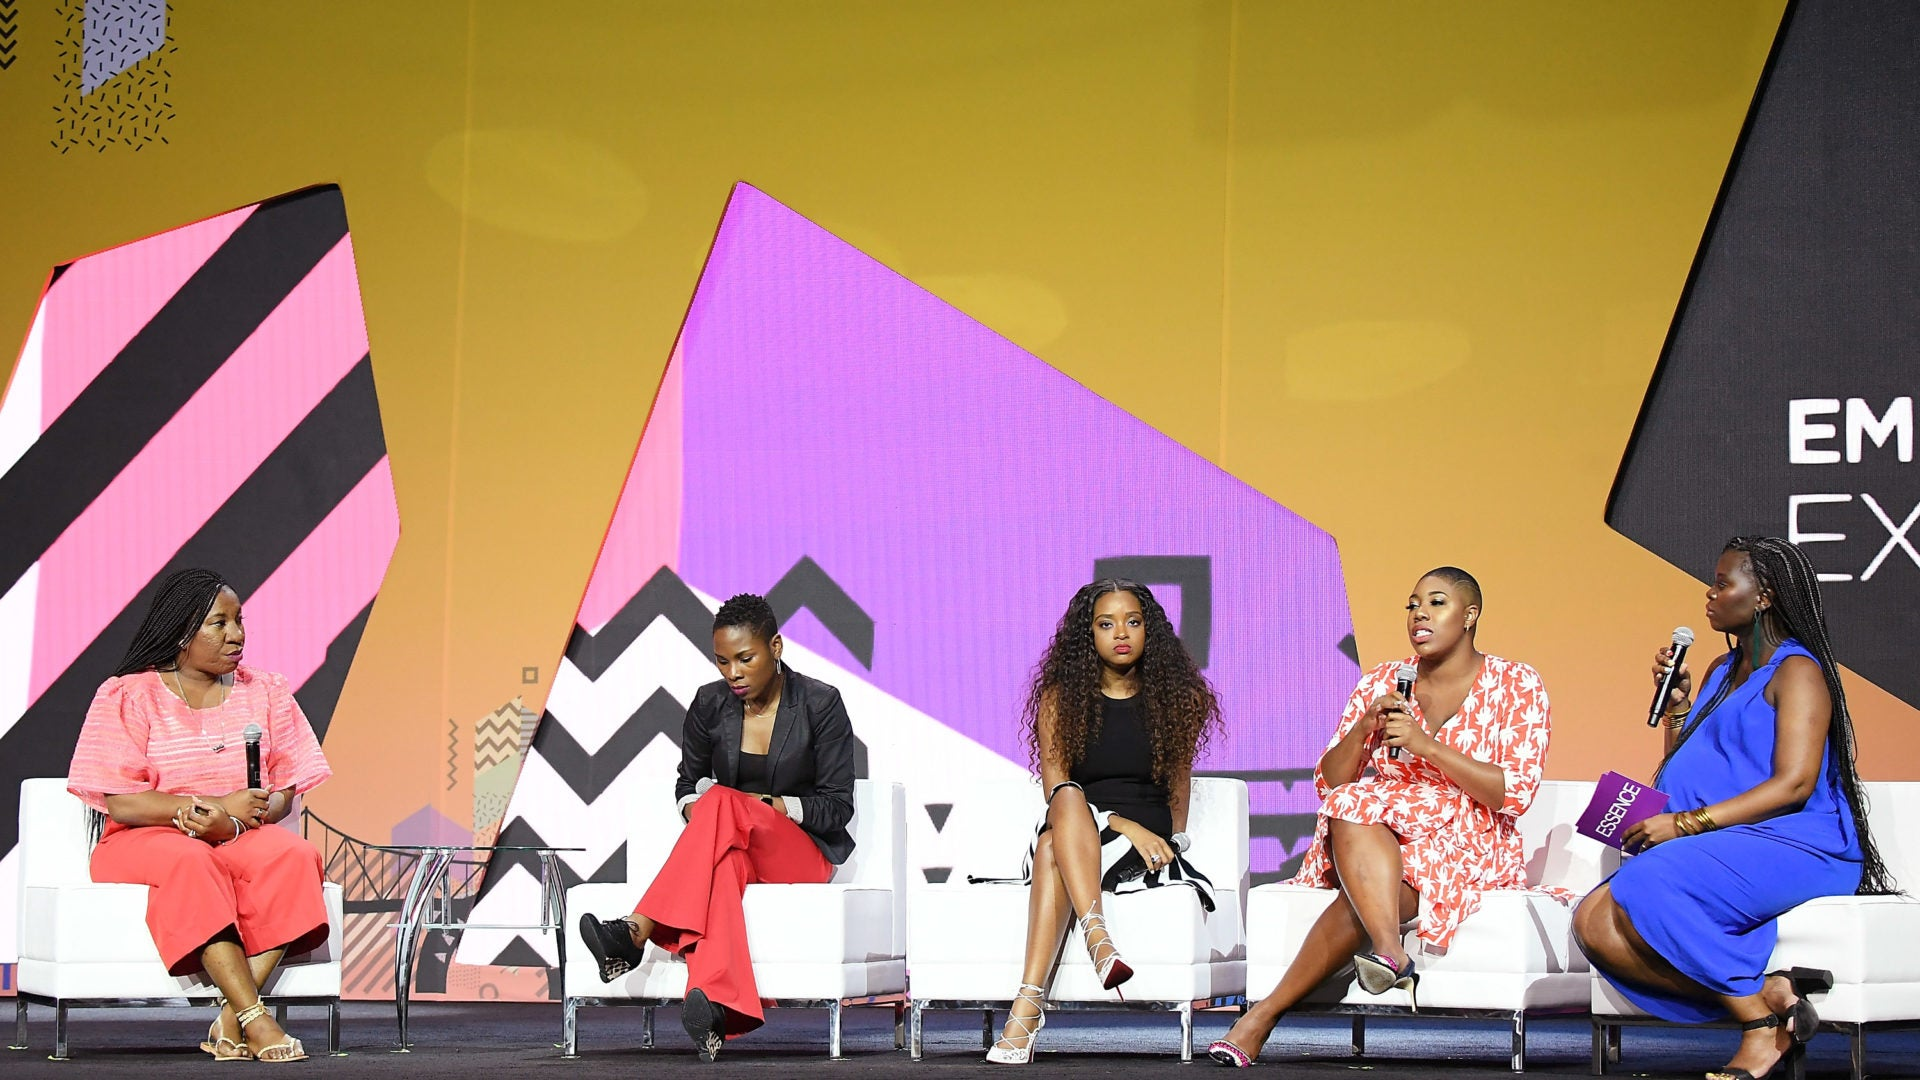 I'm Woke. Now What: Tarana Burke, Symone Sanders, Tamika Mallory & Luvvie Ajayi Discuss The Work Ahead In The Fight For Social Change